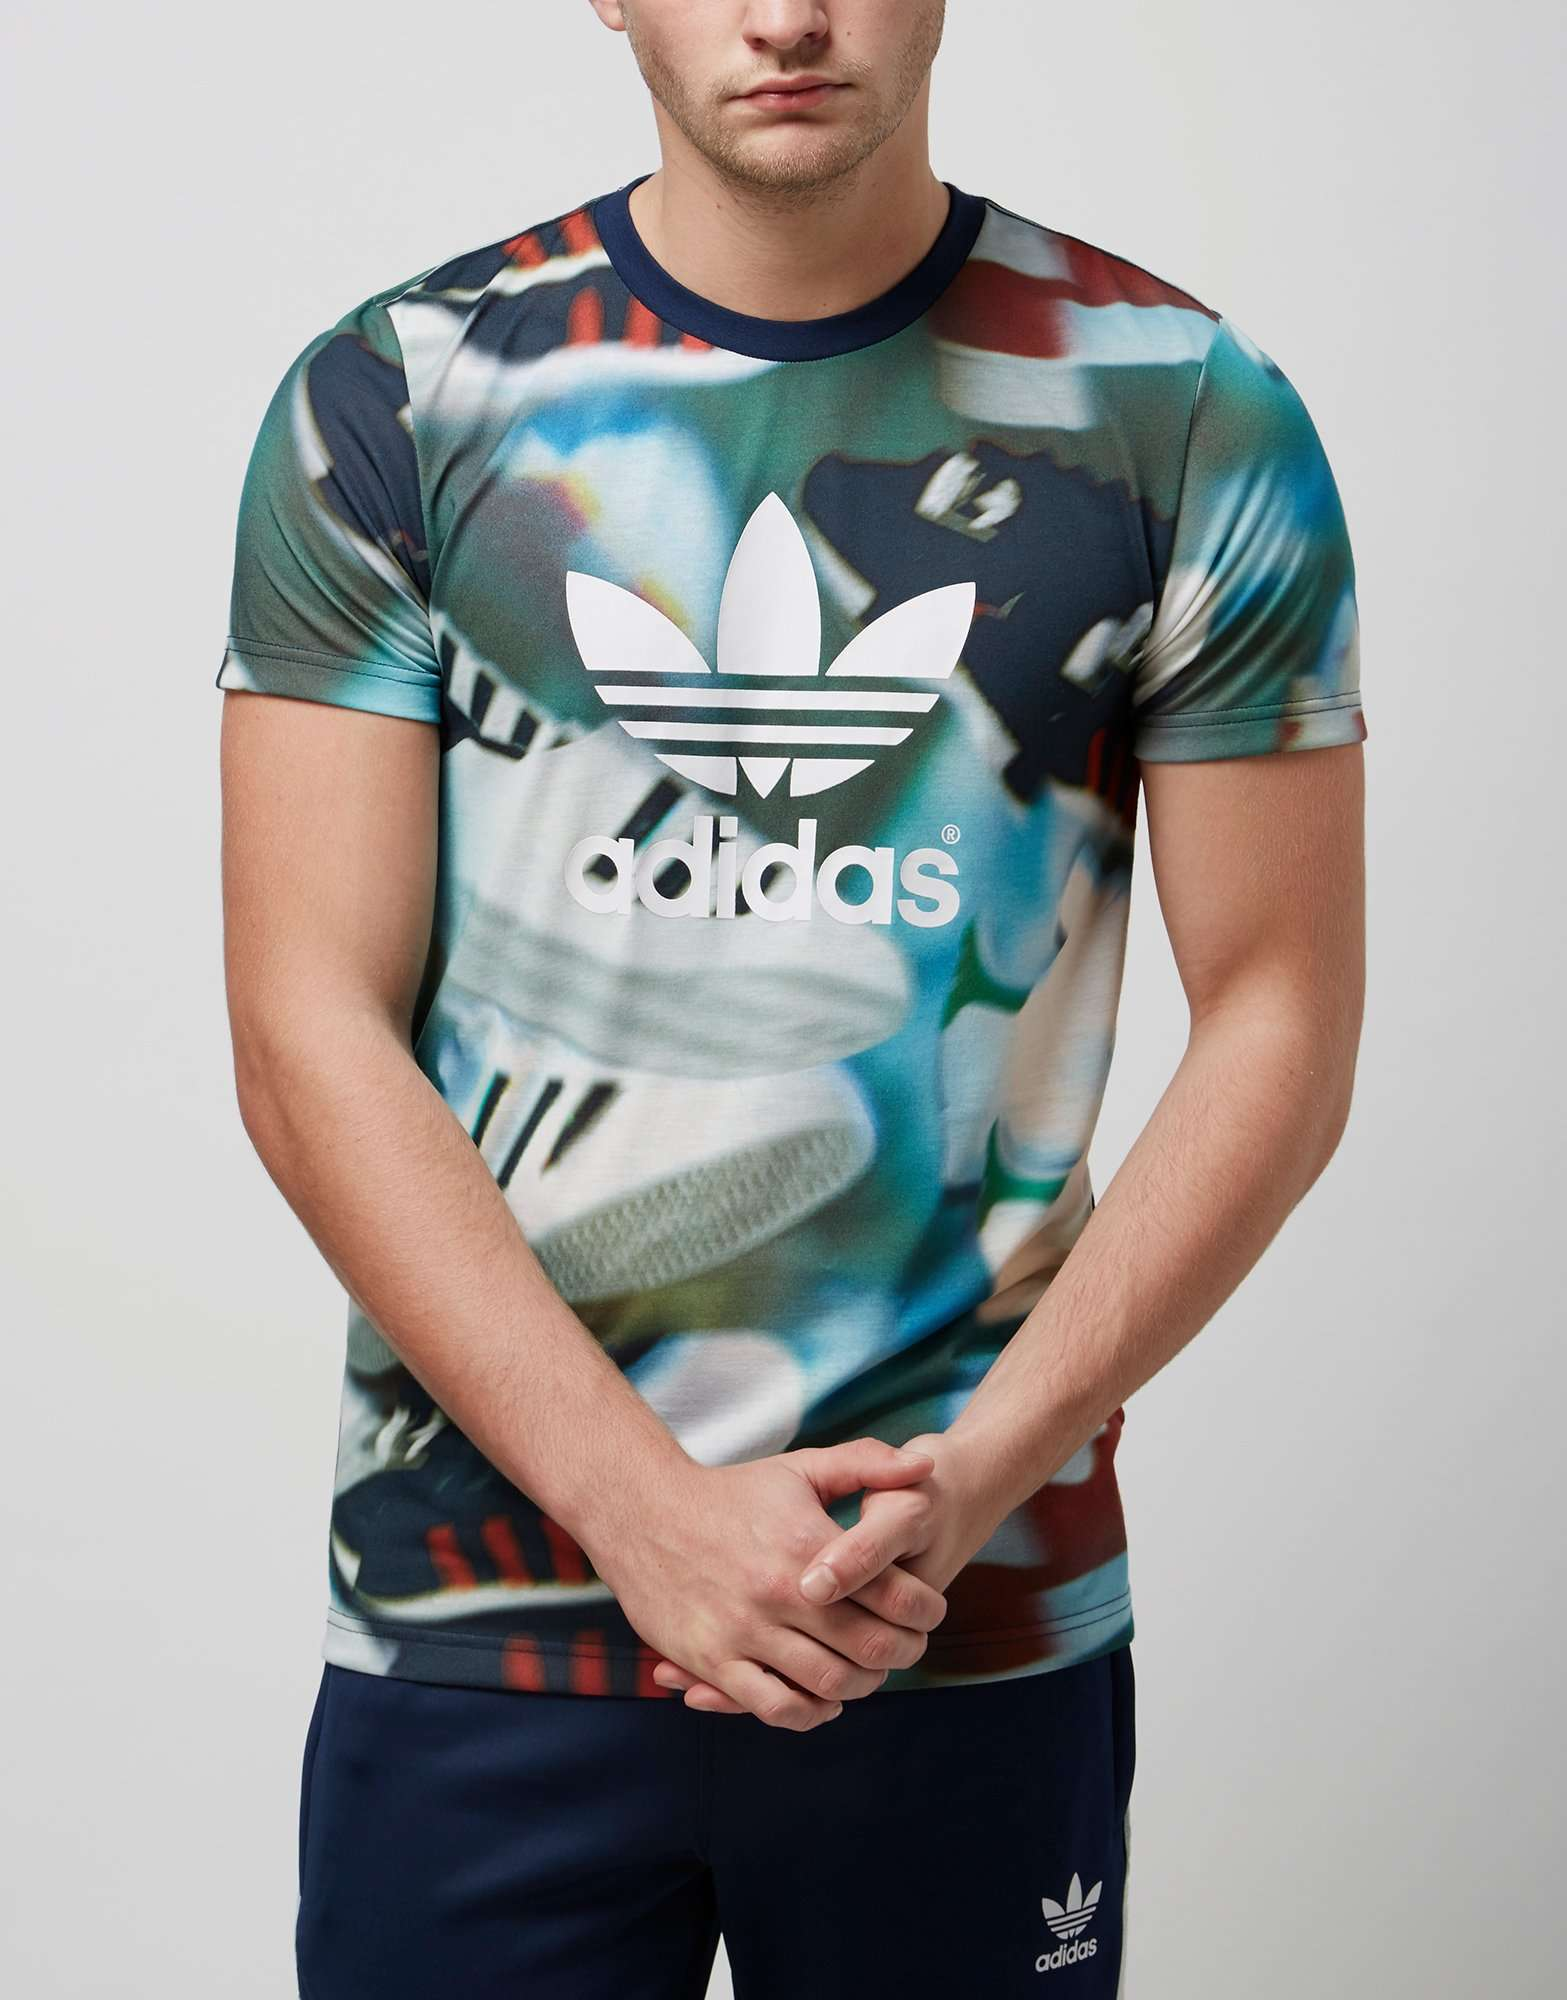 adidas t shirt size guide